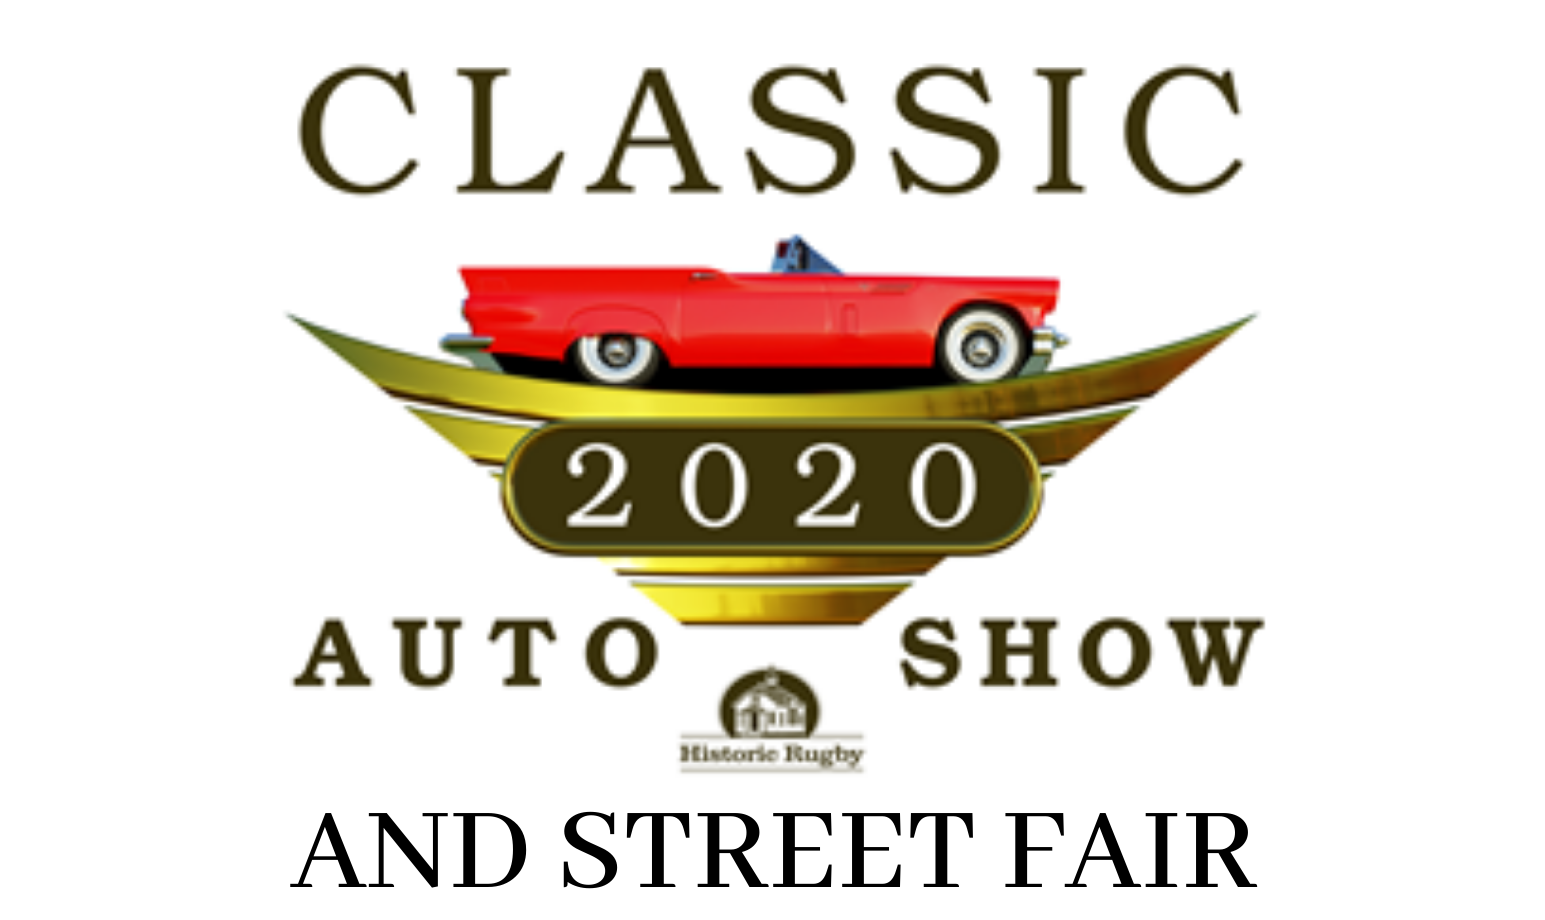 2020 Historic Rugby Classic Auto Show and Street Fair